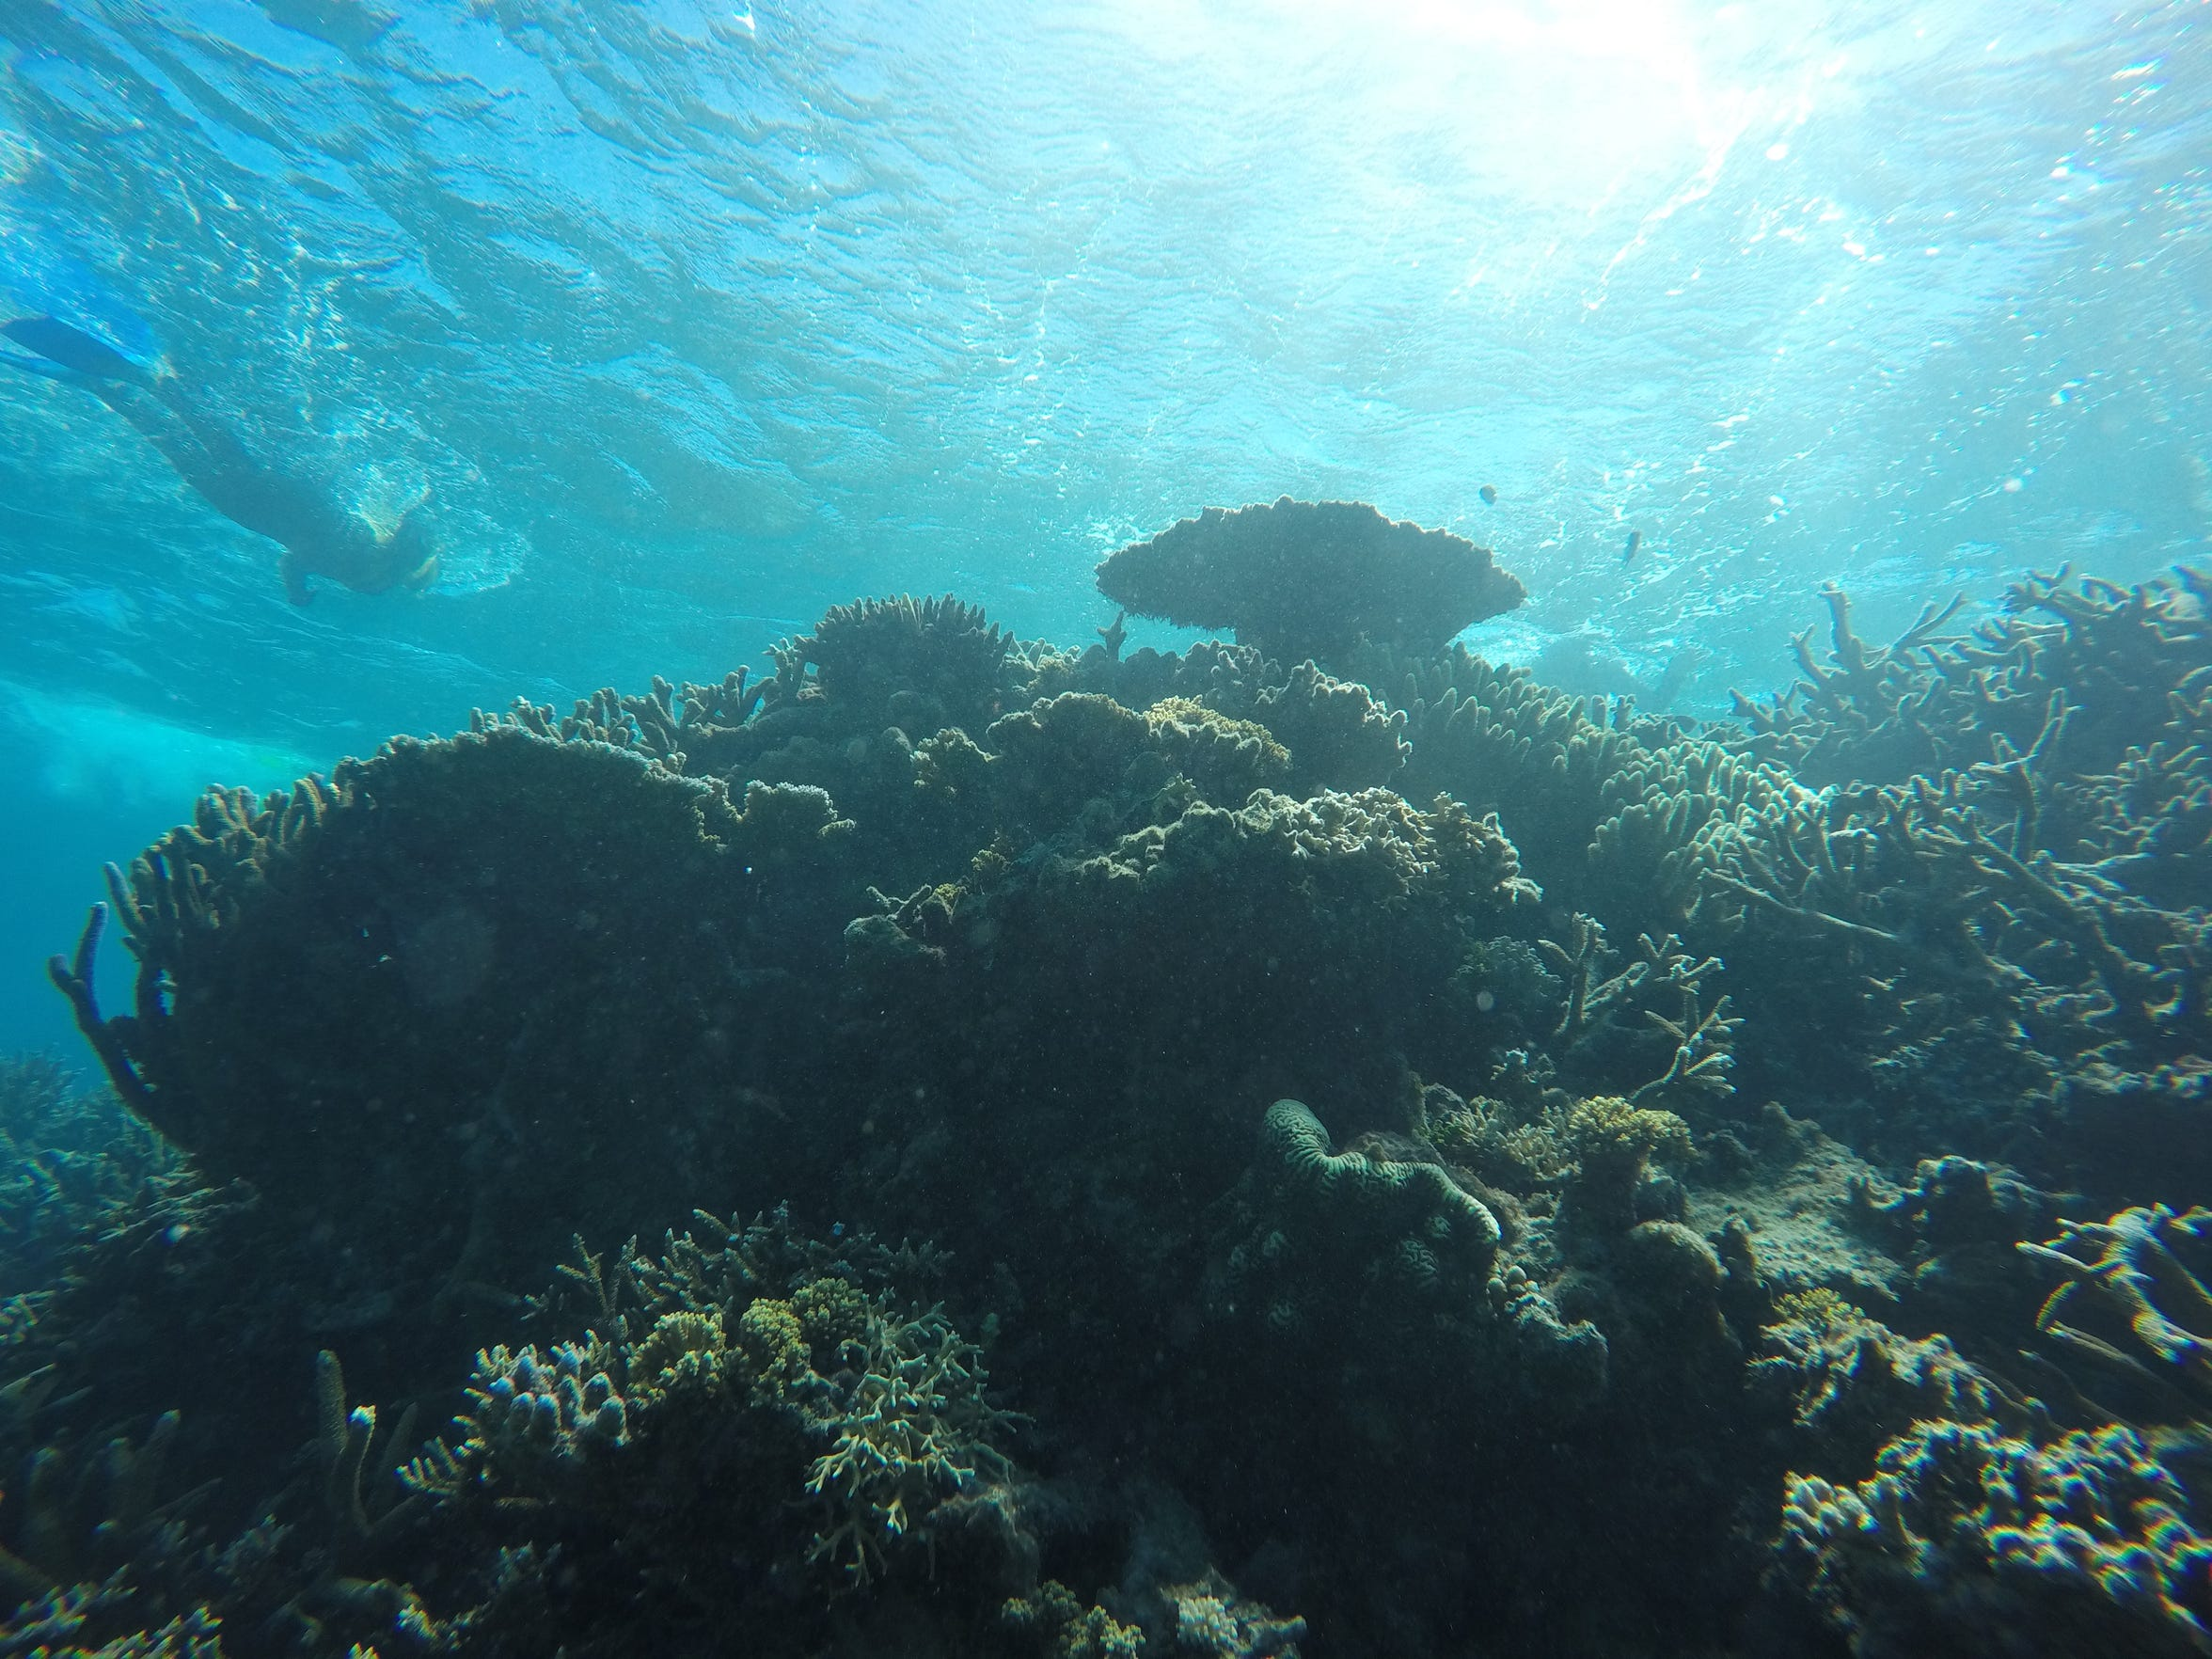 A snorkeler explores the corals on the Great Barrier